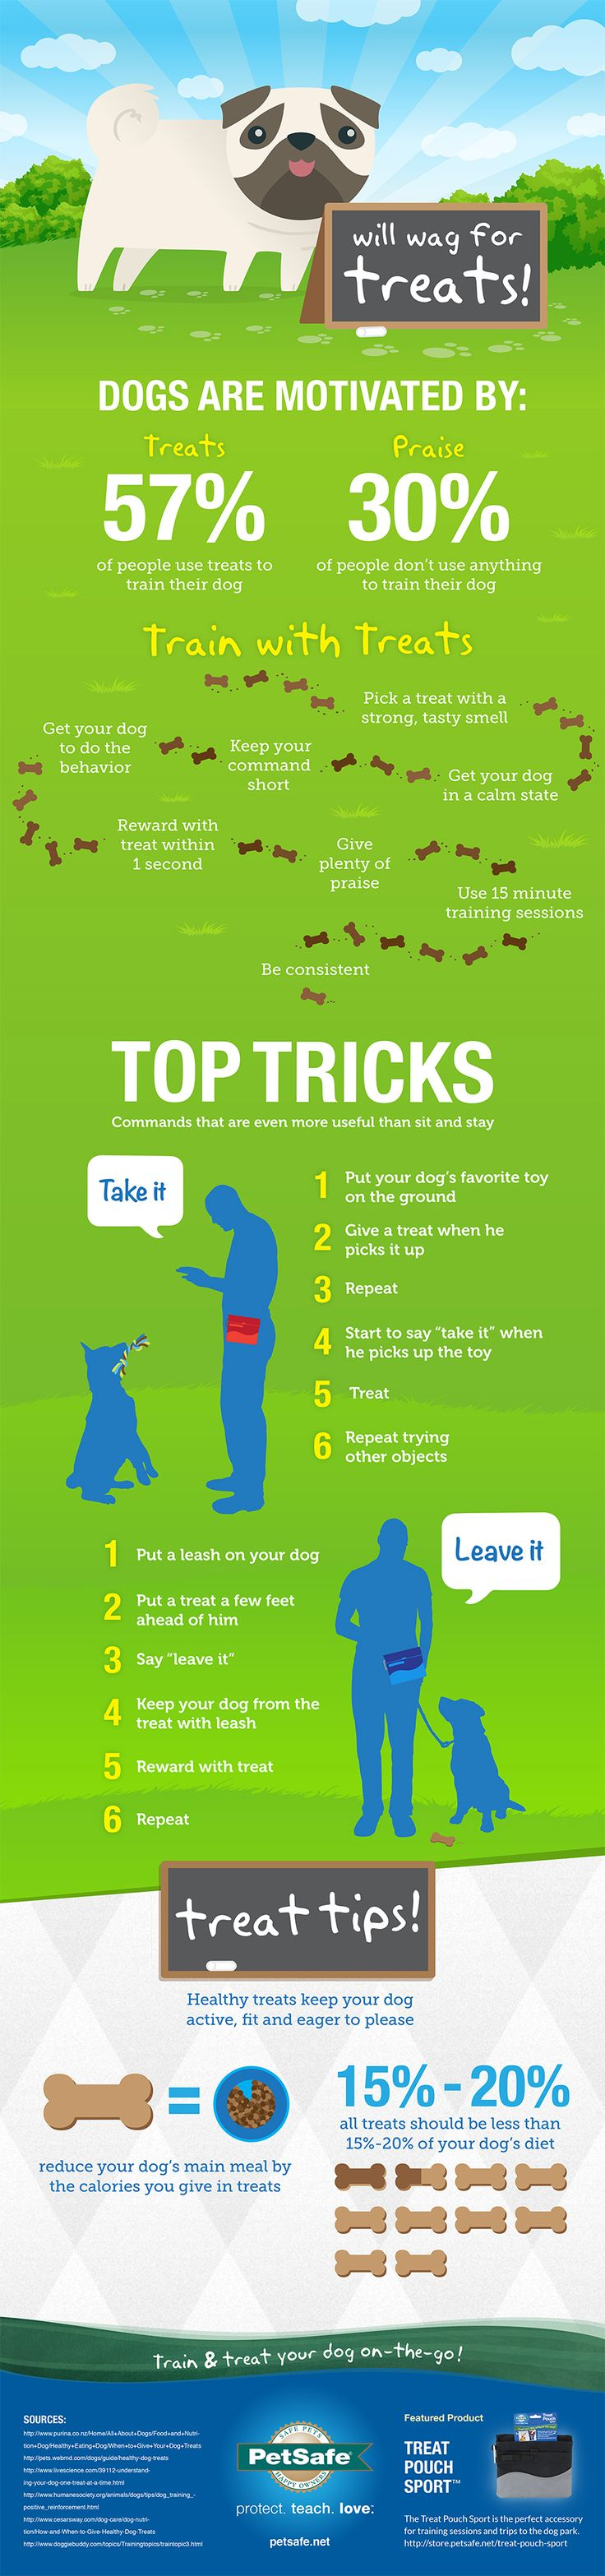 How To Train Your Dog With Treats - The Leave it/Take it command is VERY important for your dog's safety. Ex. dropped medications or other dog unfriendly foods, strangers trying to feed him/her ect.